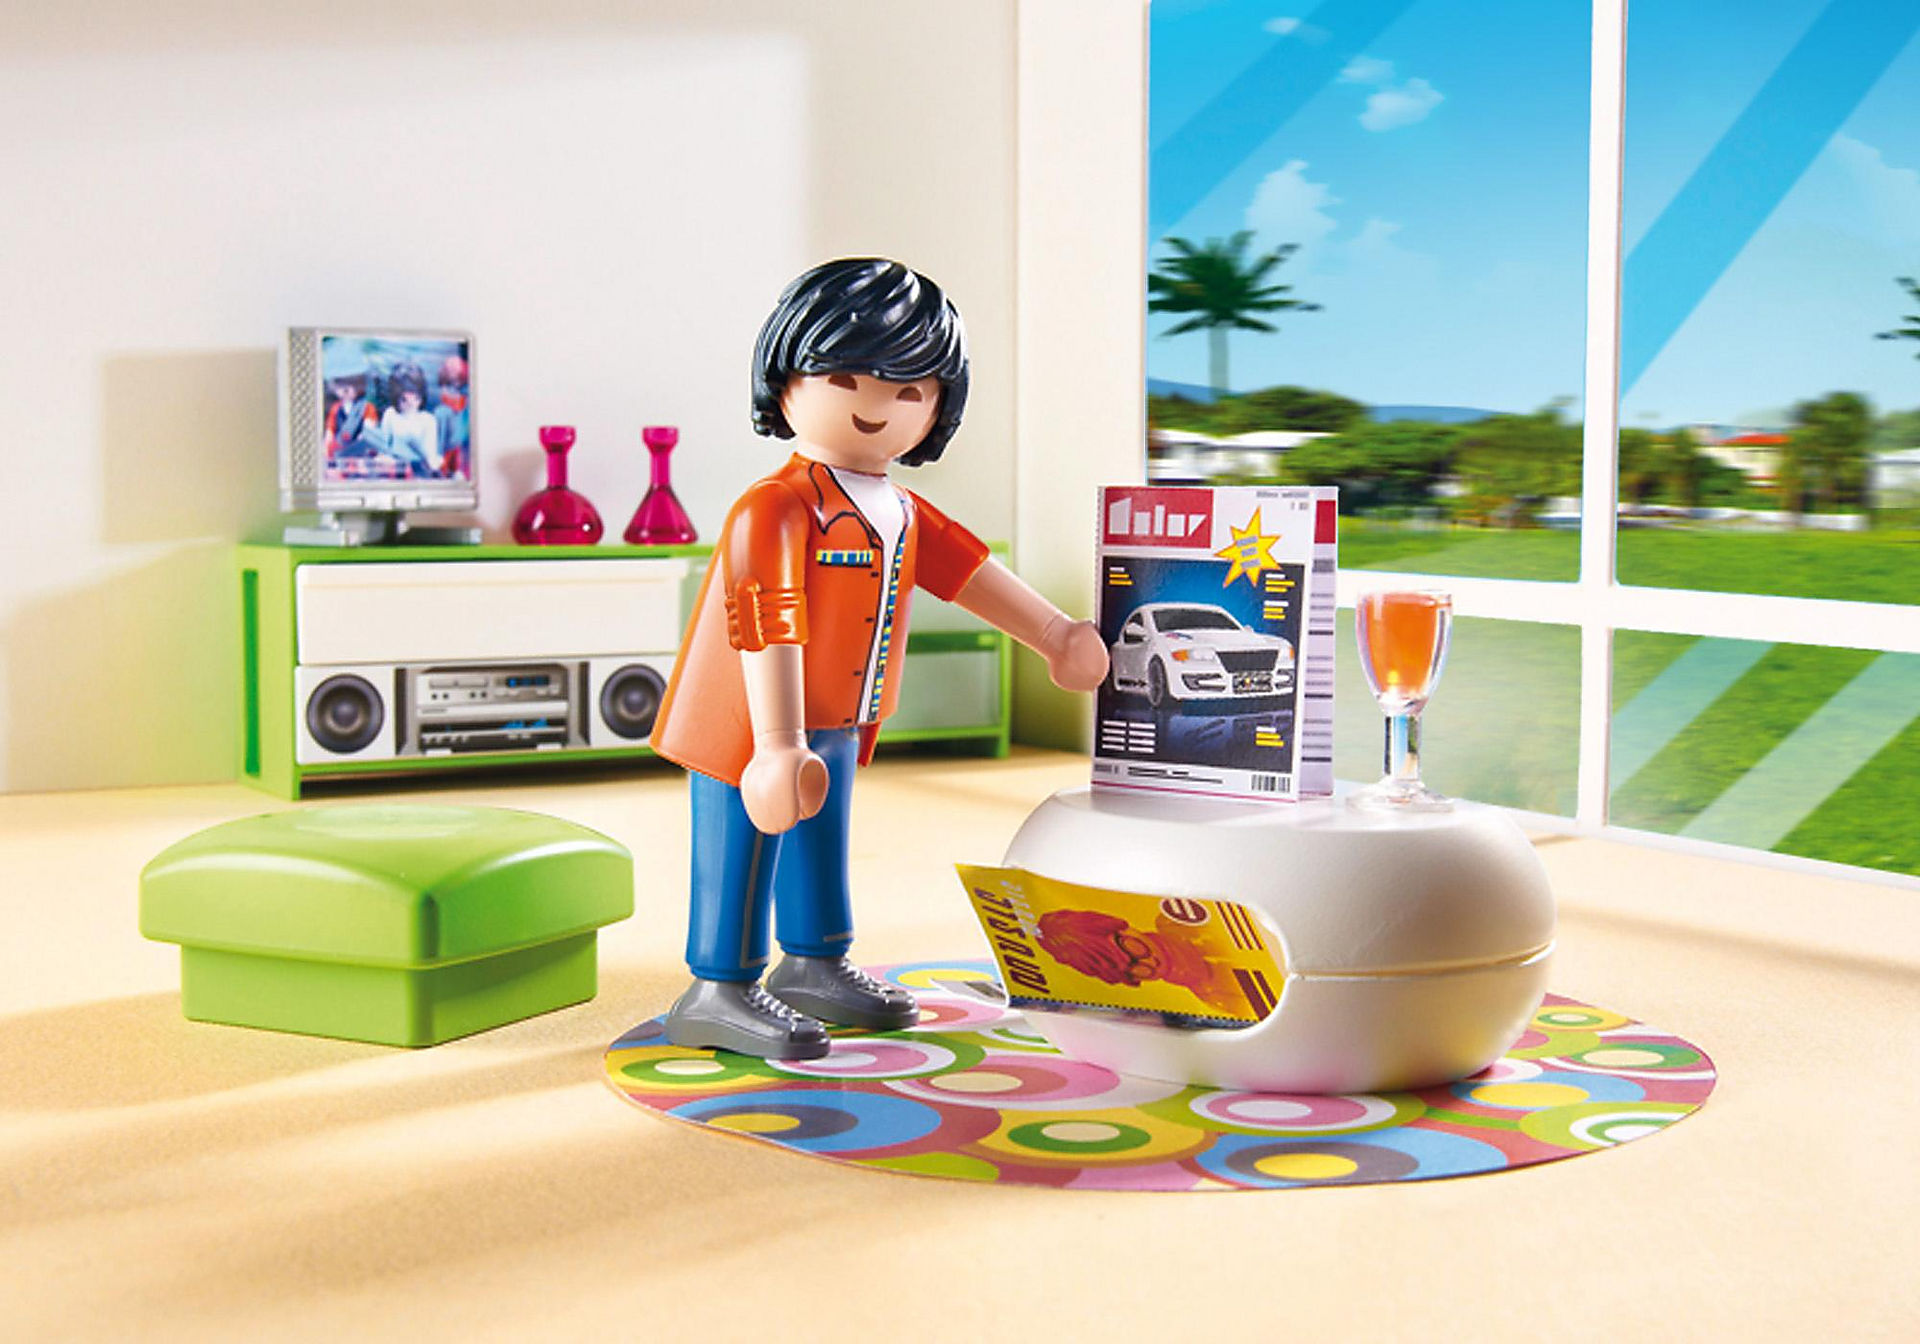 http://media.playmobil.com/i/playmobil/5584_product_extra1/Modernt vardagsrum